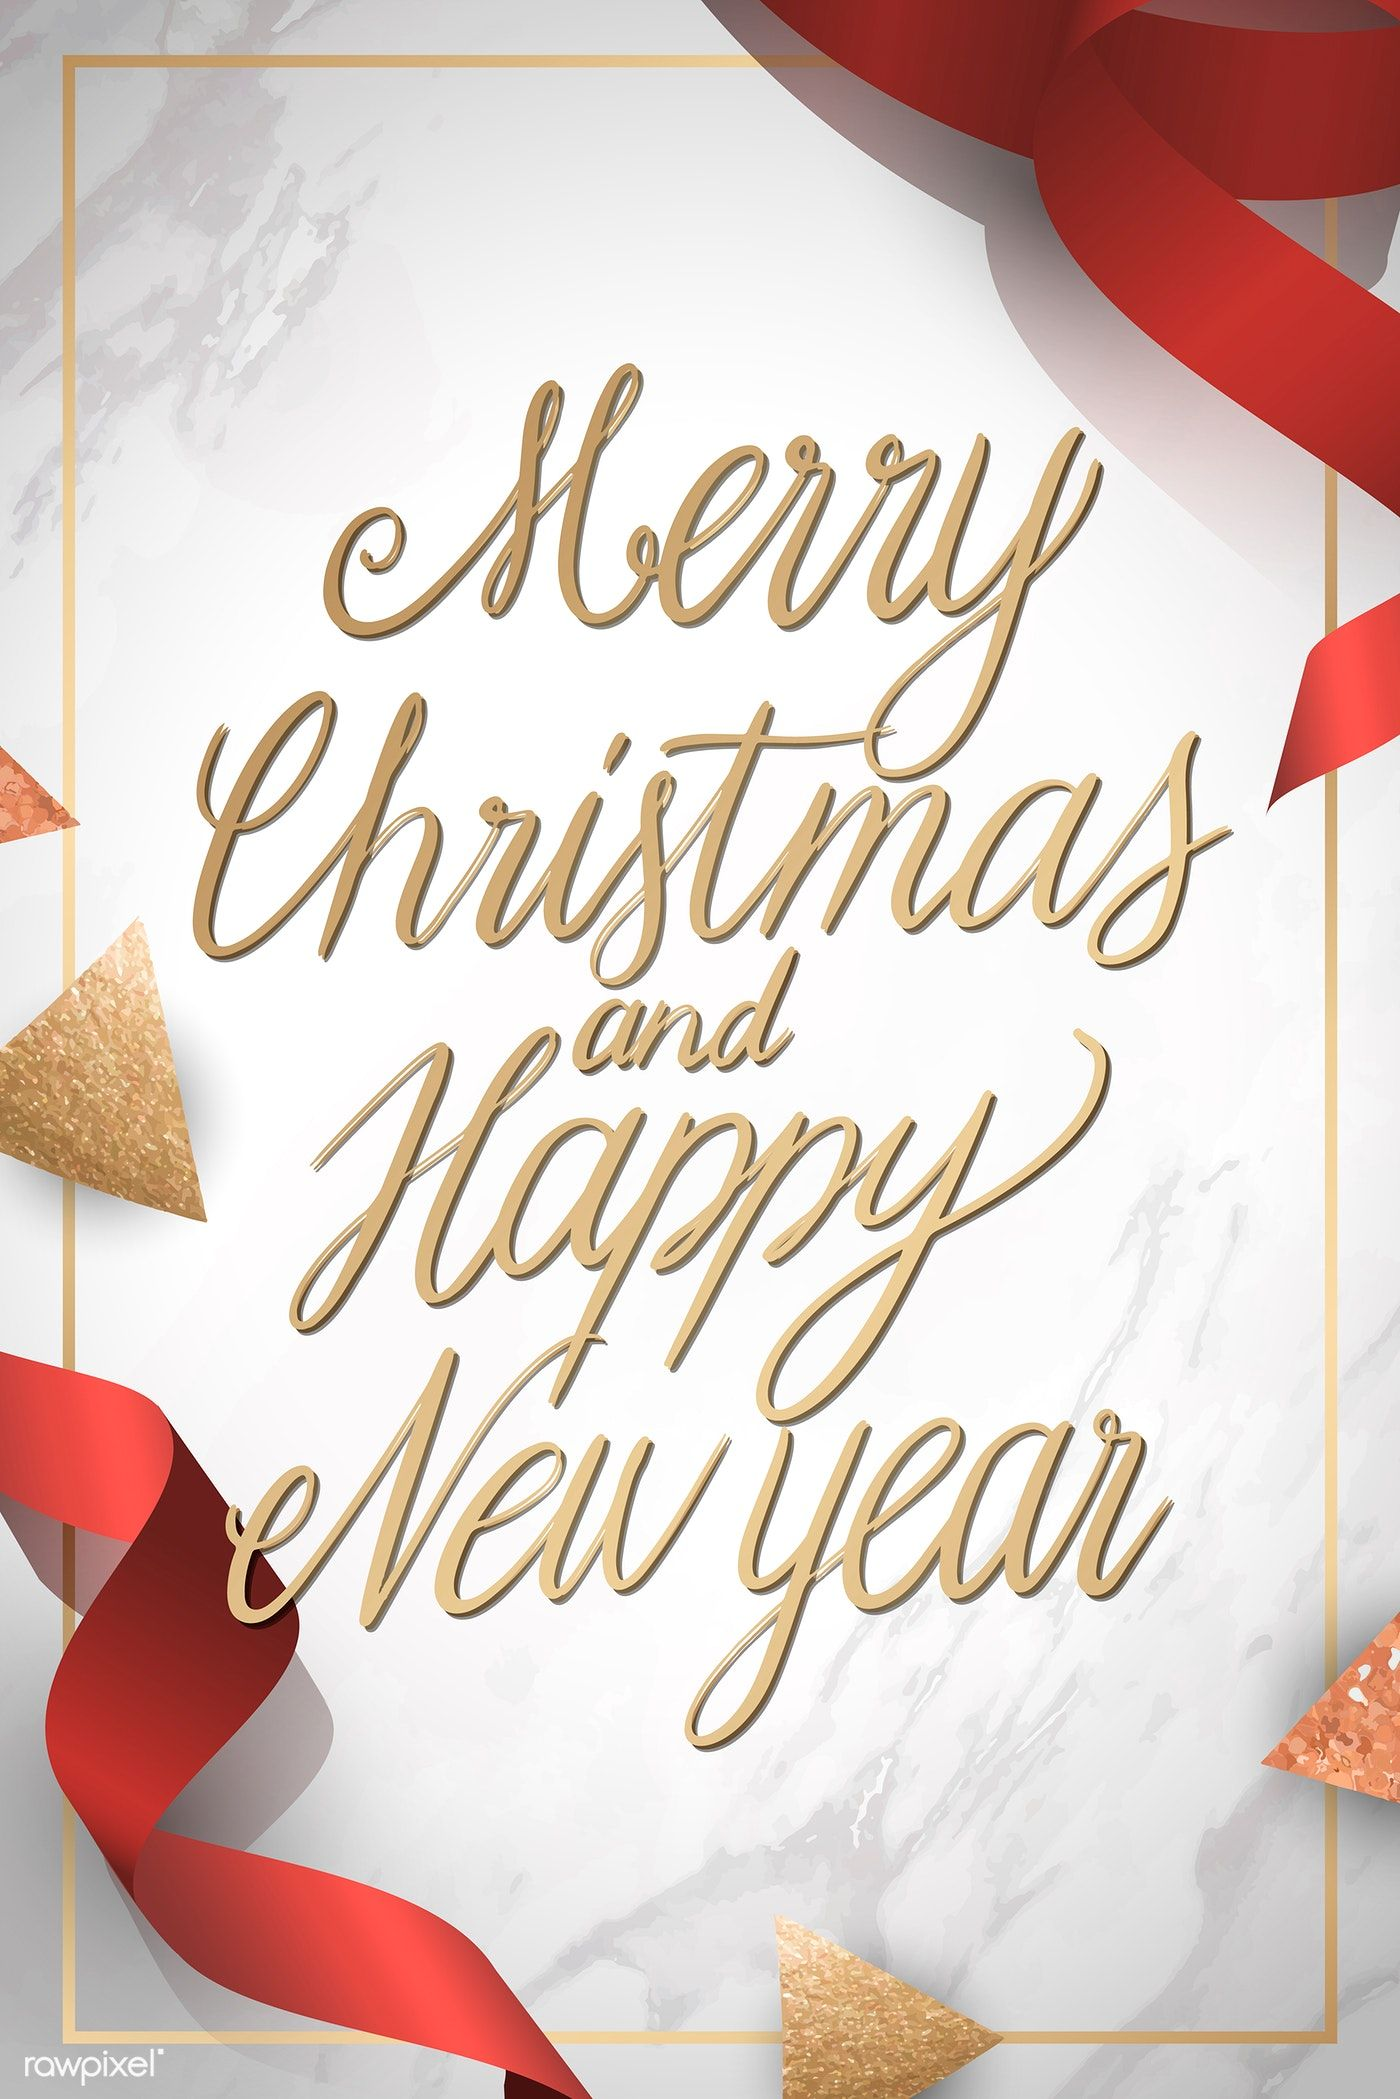 Download Premium Vector Of Merry Christmas And Happy New Year Card Vector Merry Christmas And Happy New Year New Year Card Happy New Year Cards